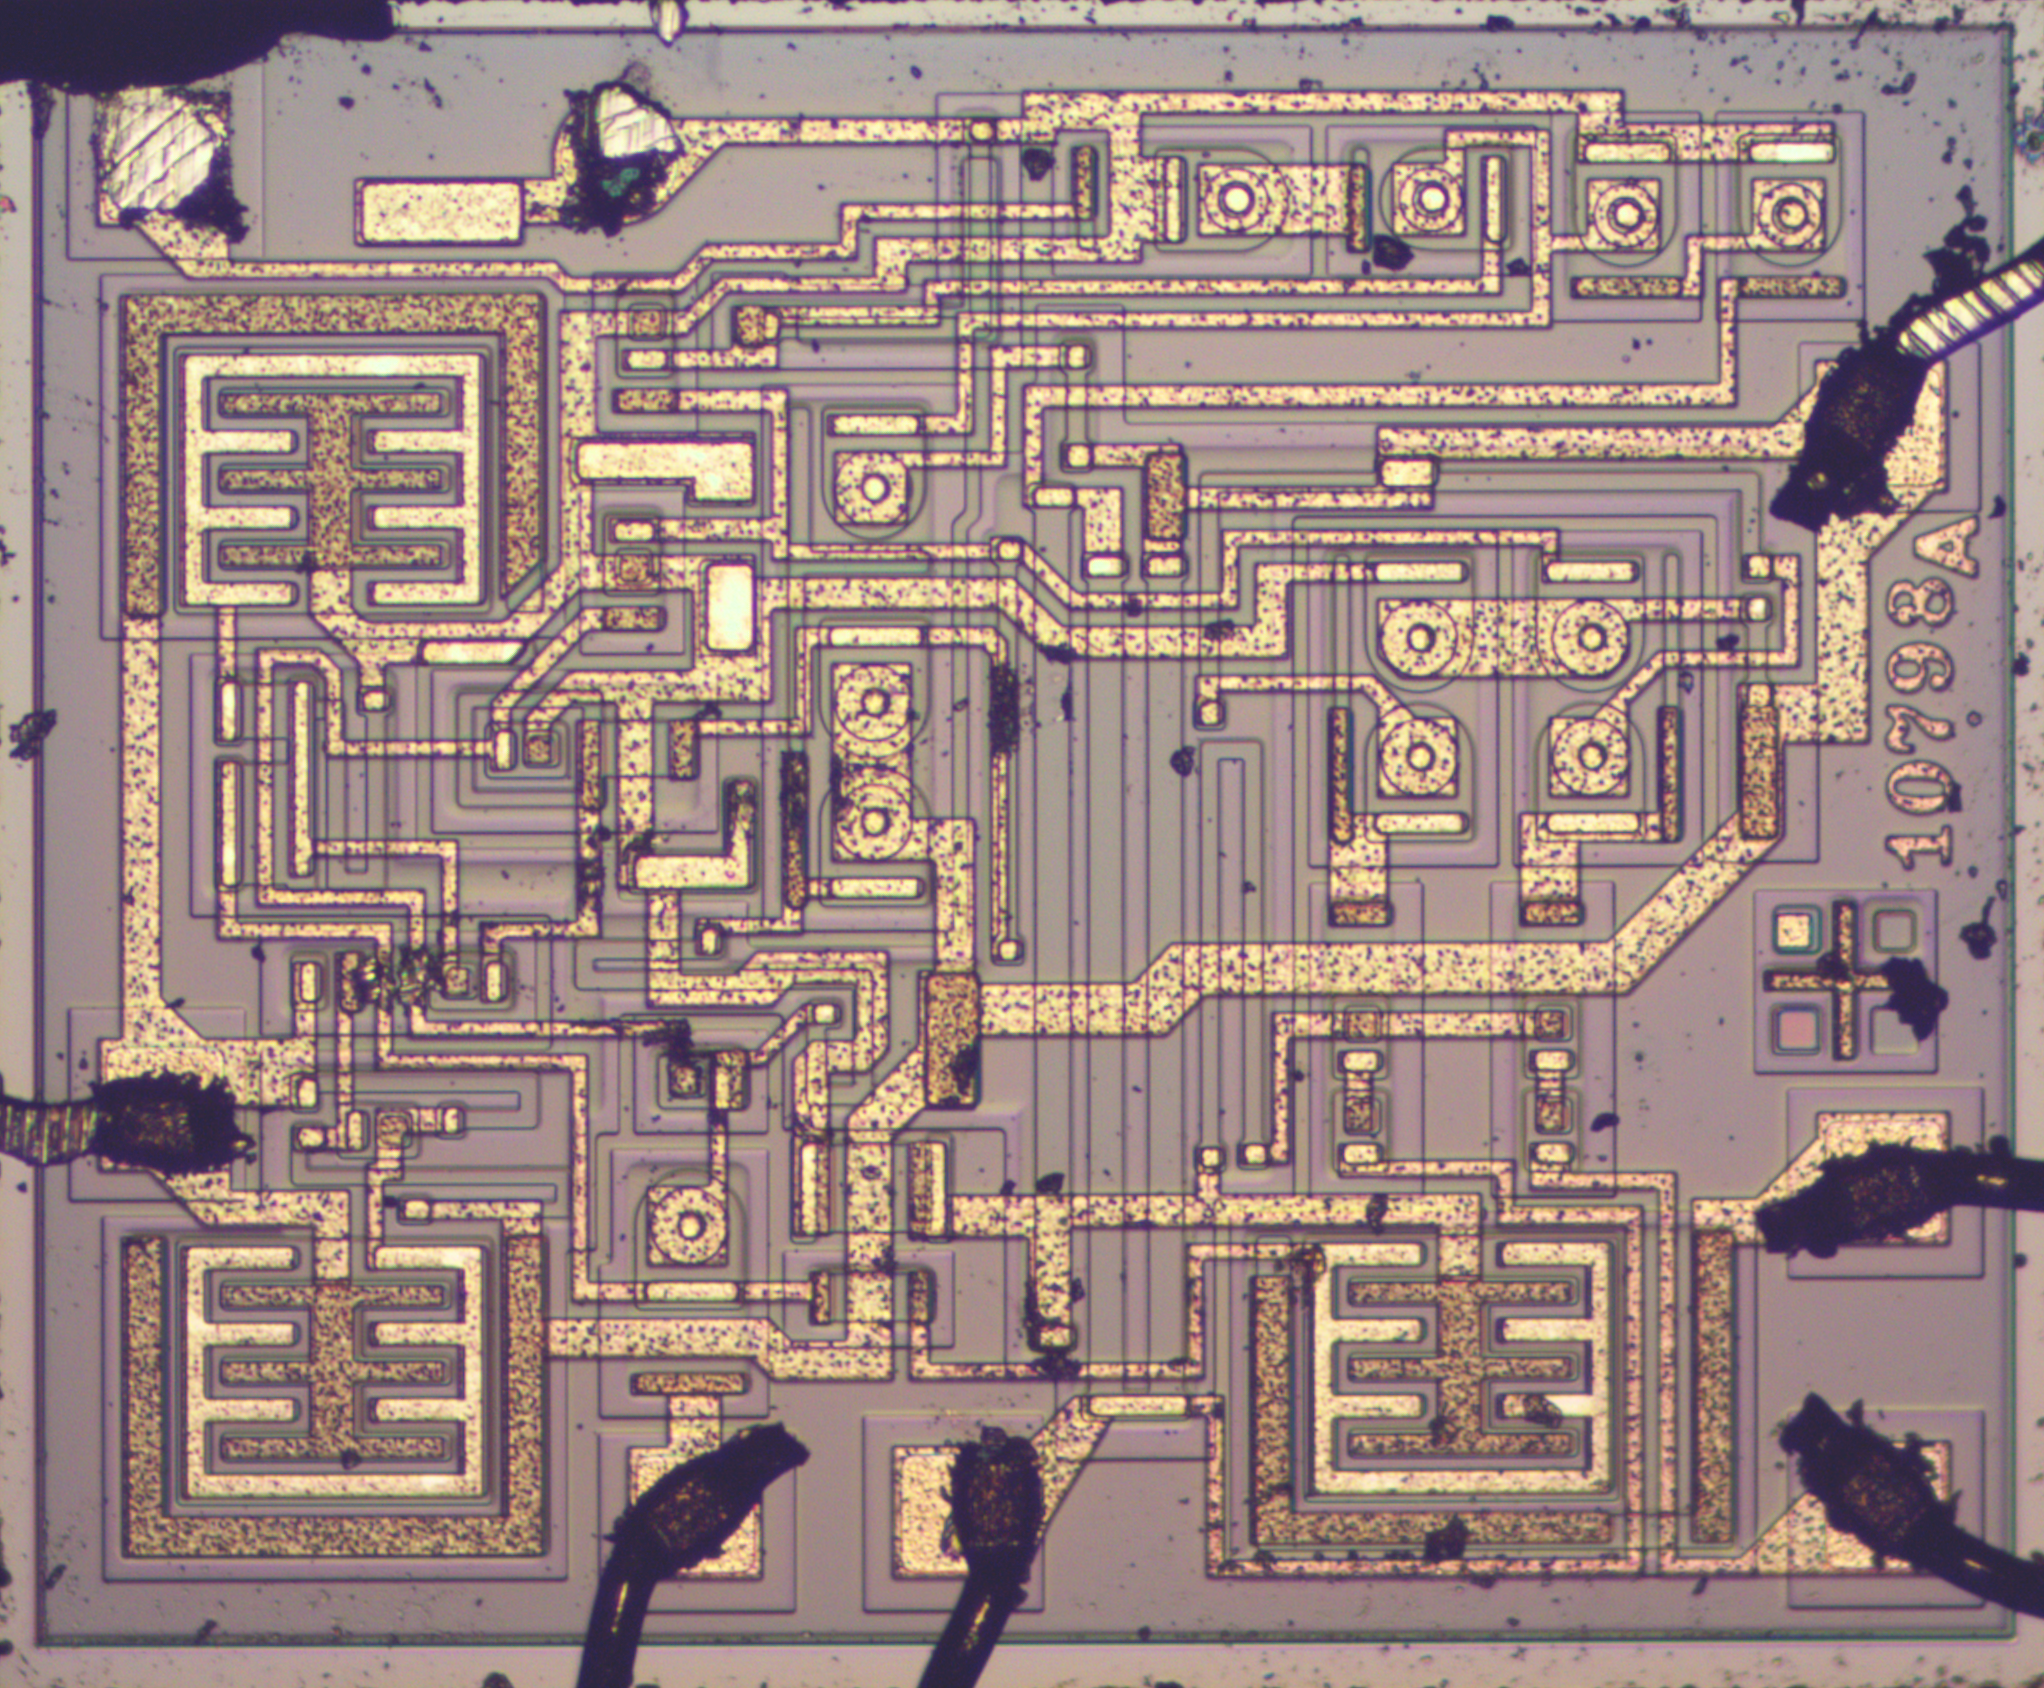 555 timer teardown: inside the world's most por IC on